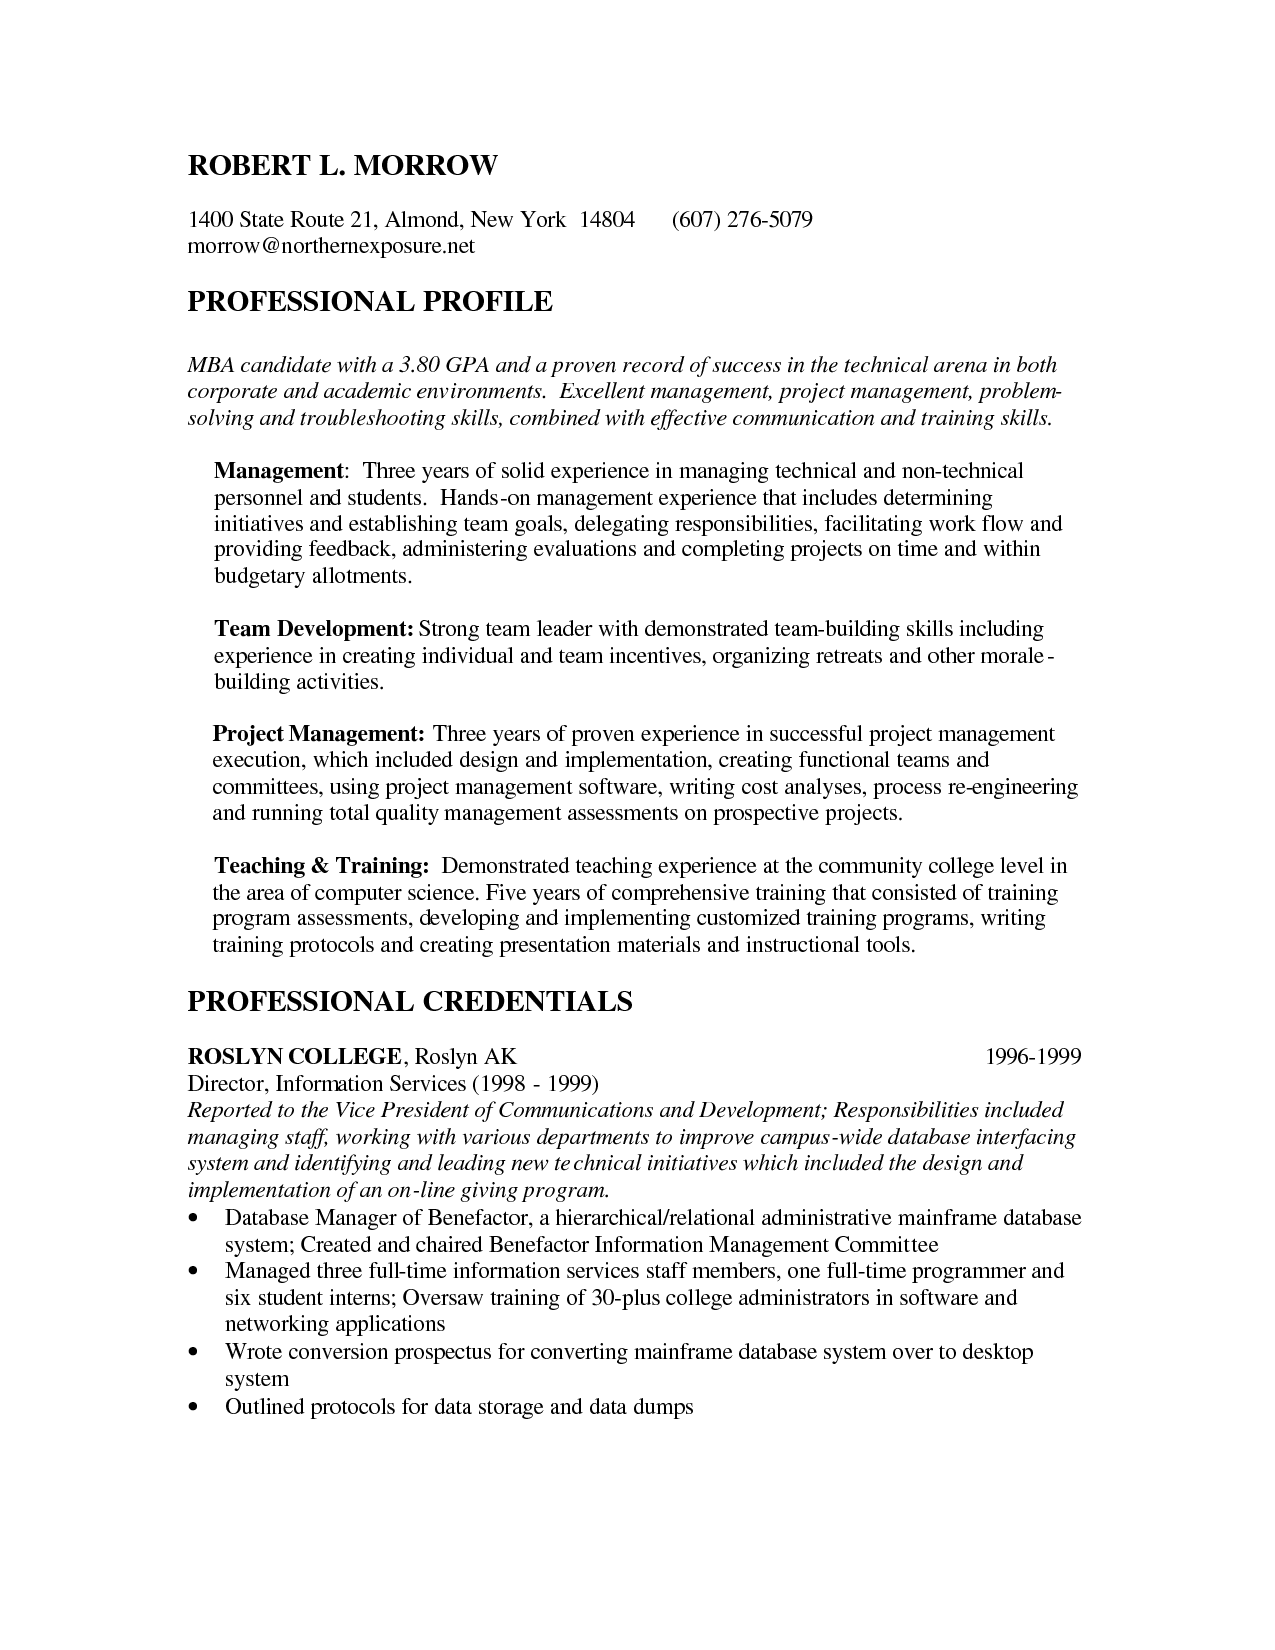 Resume For Mba Application Pleasurable Mba Application Resume 7 Popular    Resume Example